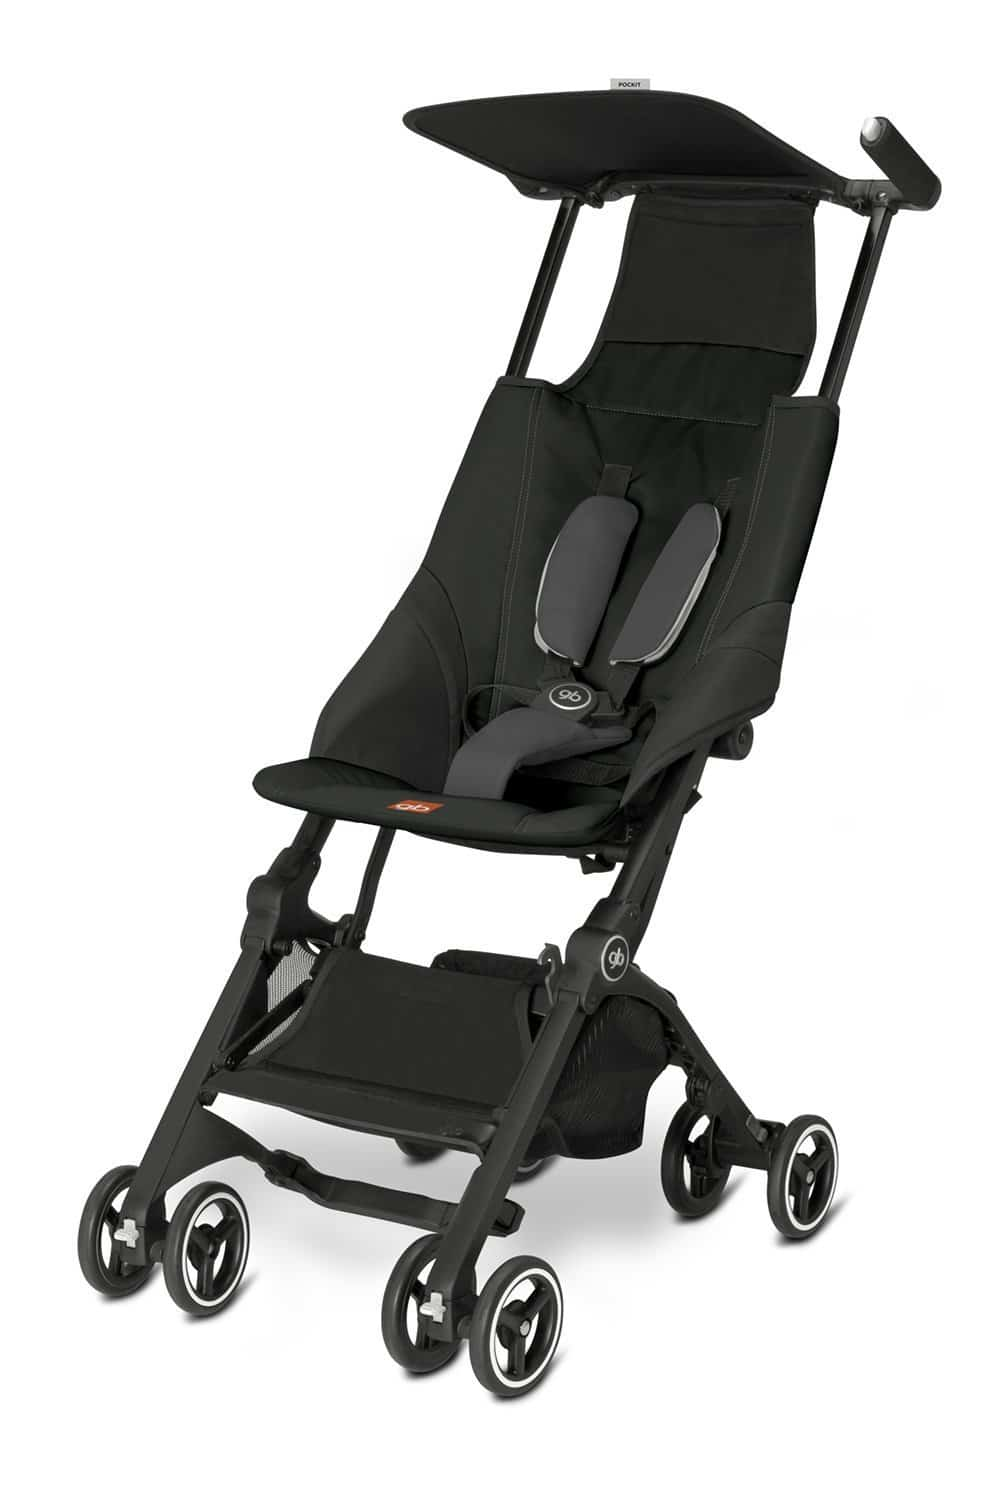 Twin Stroller In Dubai The 10 Best Lightweight Strollers To Buy 2019 Littleonemag